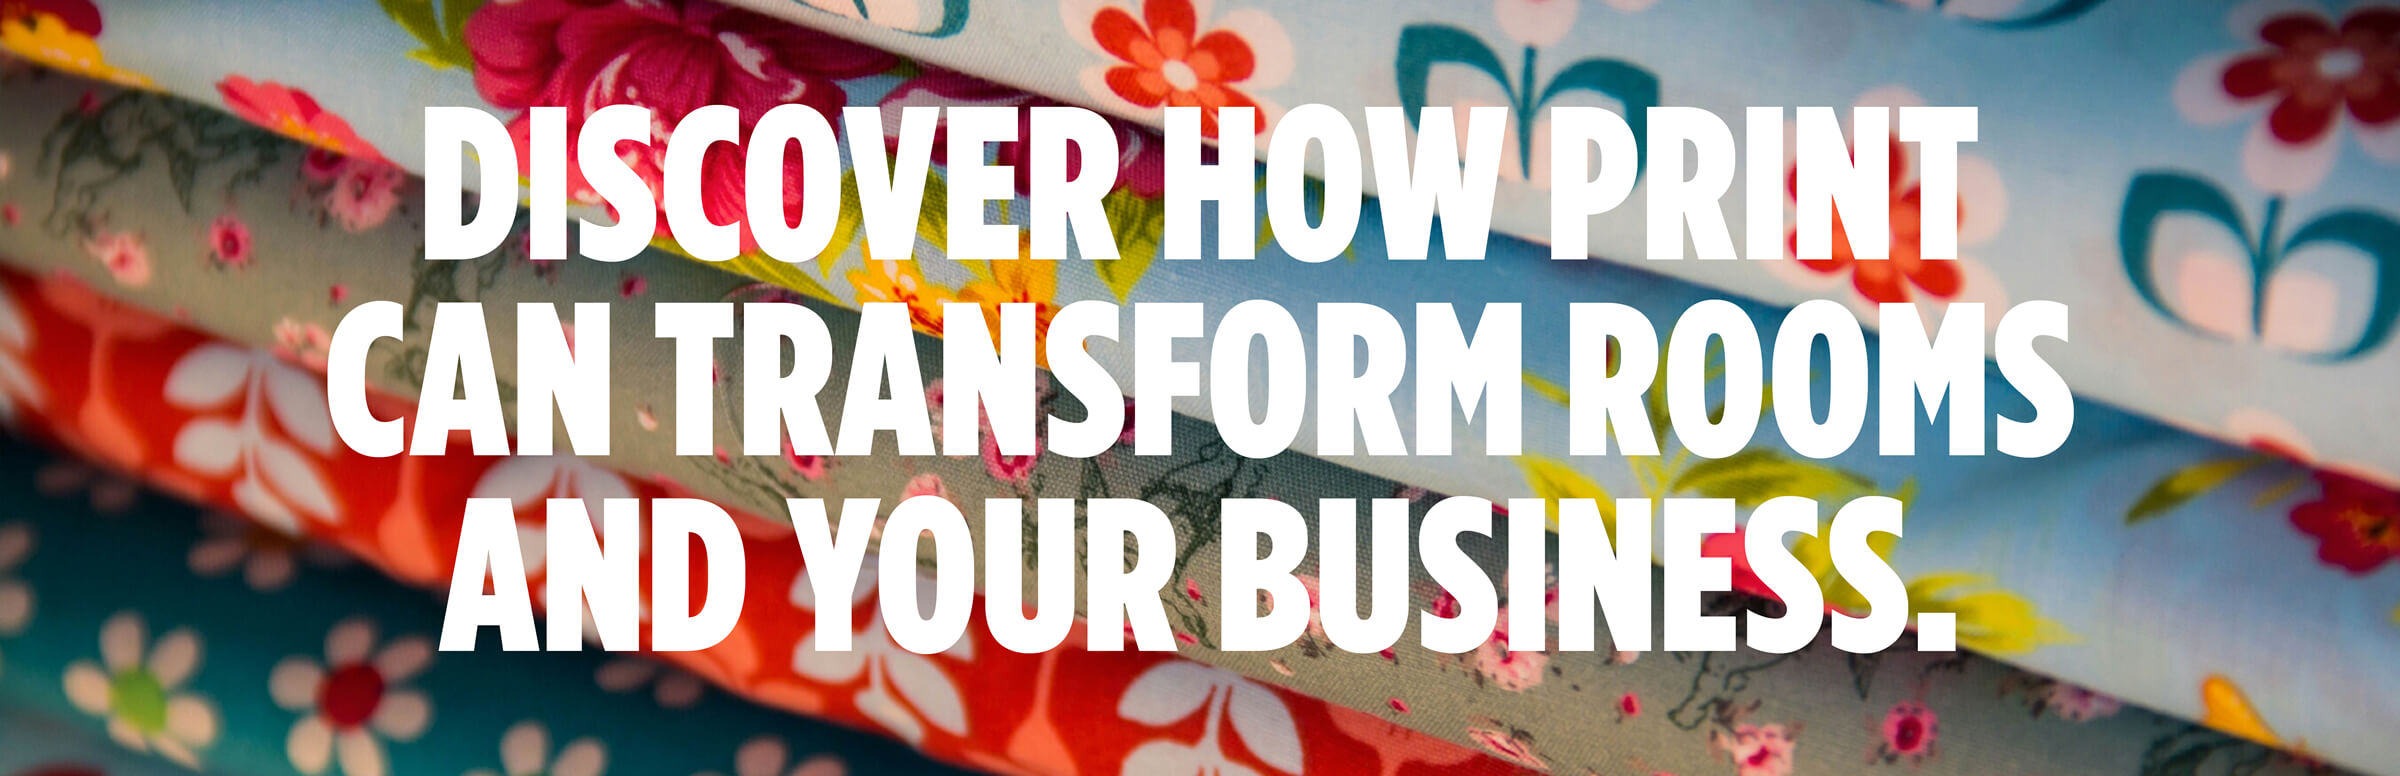 Discover How Print Can Transform Rooms And Your Business.